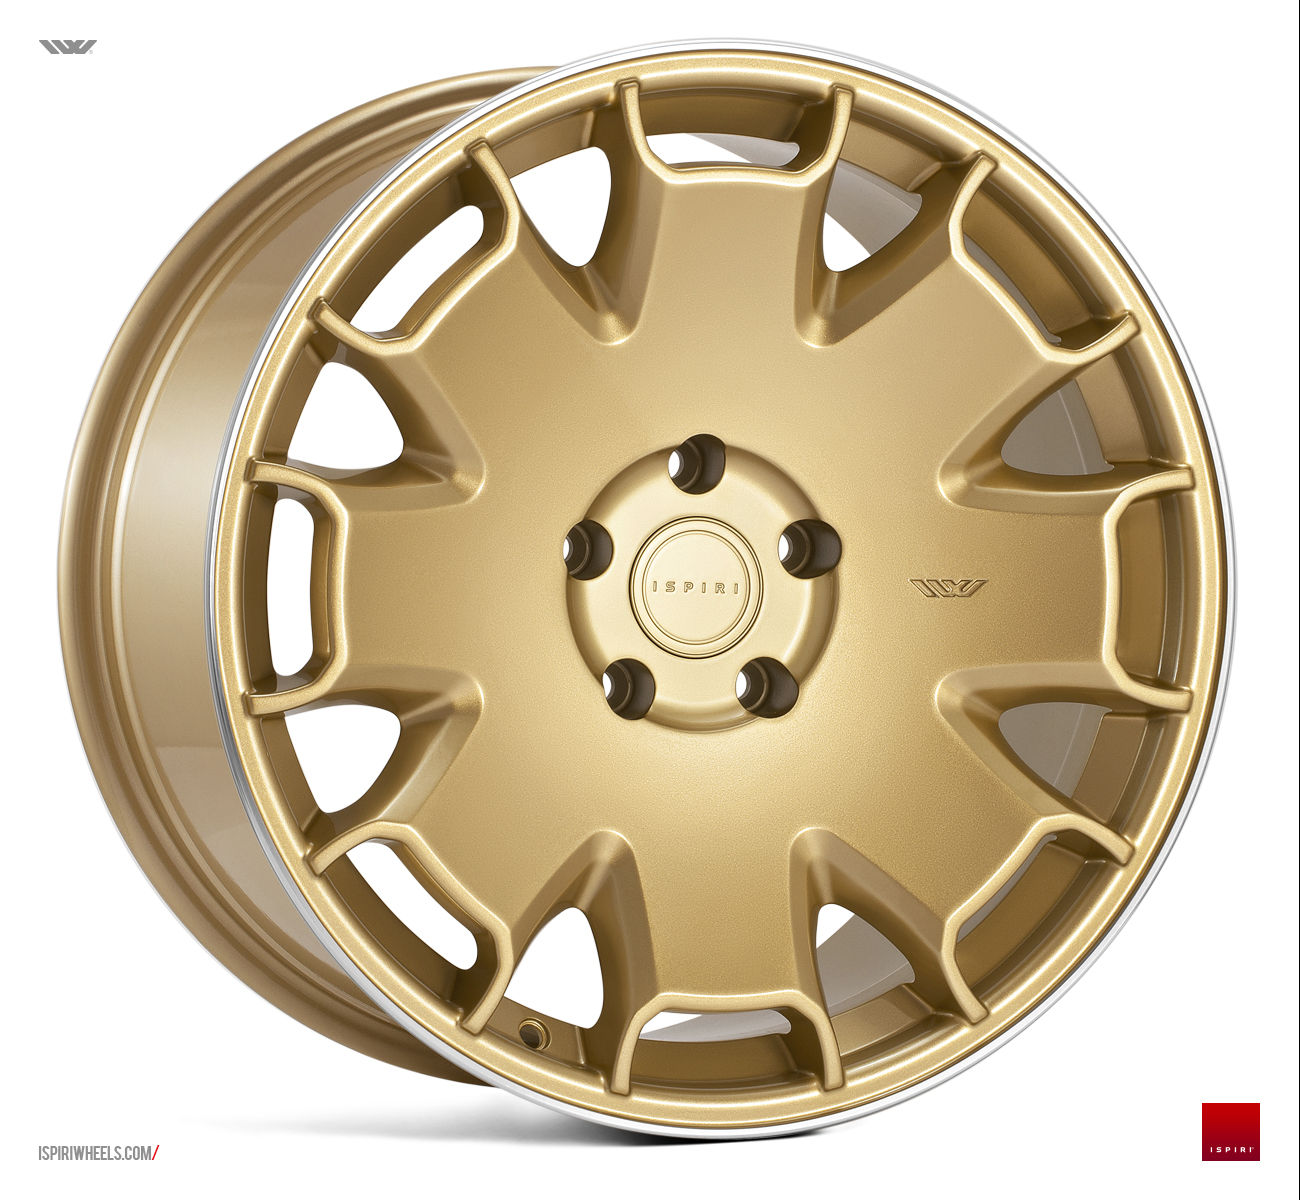 "NEW 18"" ISPIRI CSR2 ALLOY WHEELS IN VINTAGE GOLD WITH POLISHED LIP et42/42"